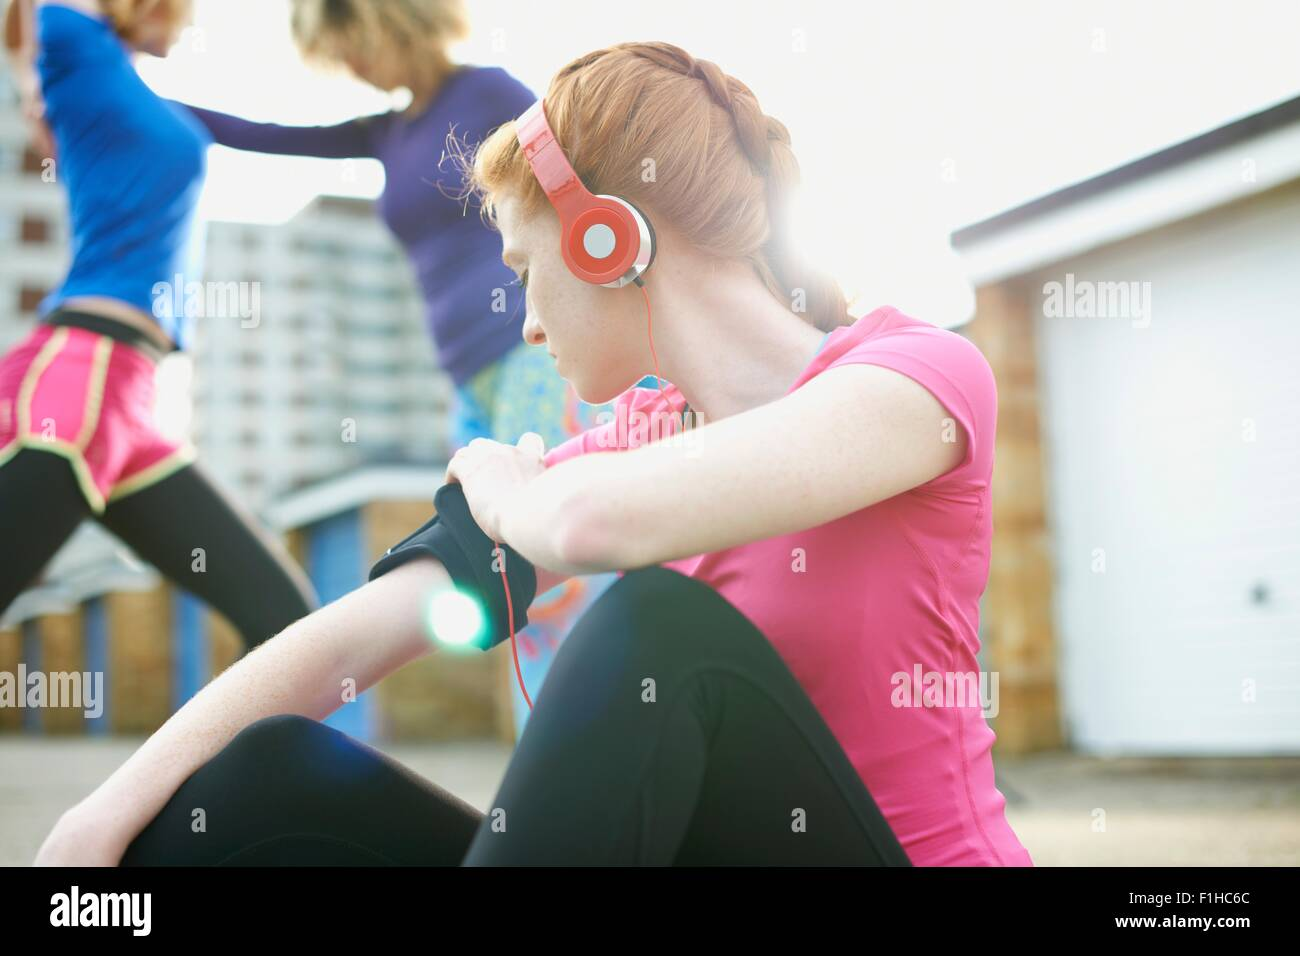 Portrait of woman sitting on floor attaching armband before exercise - Stock Image